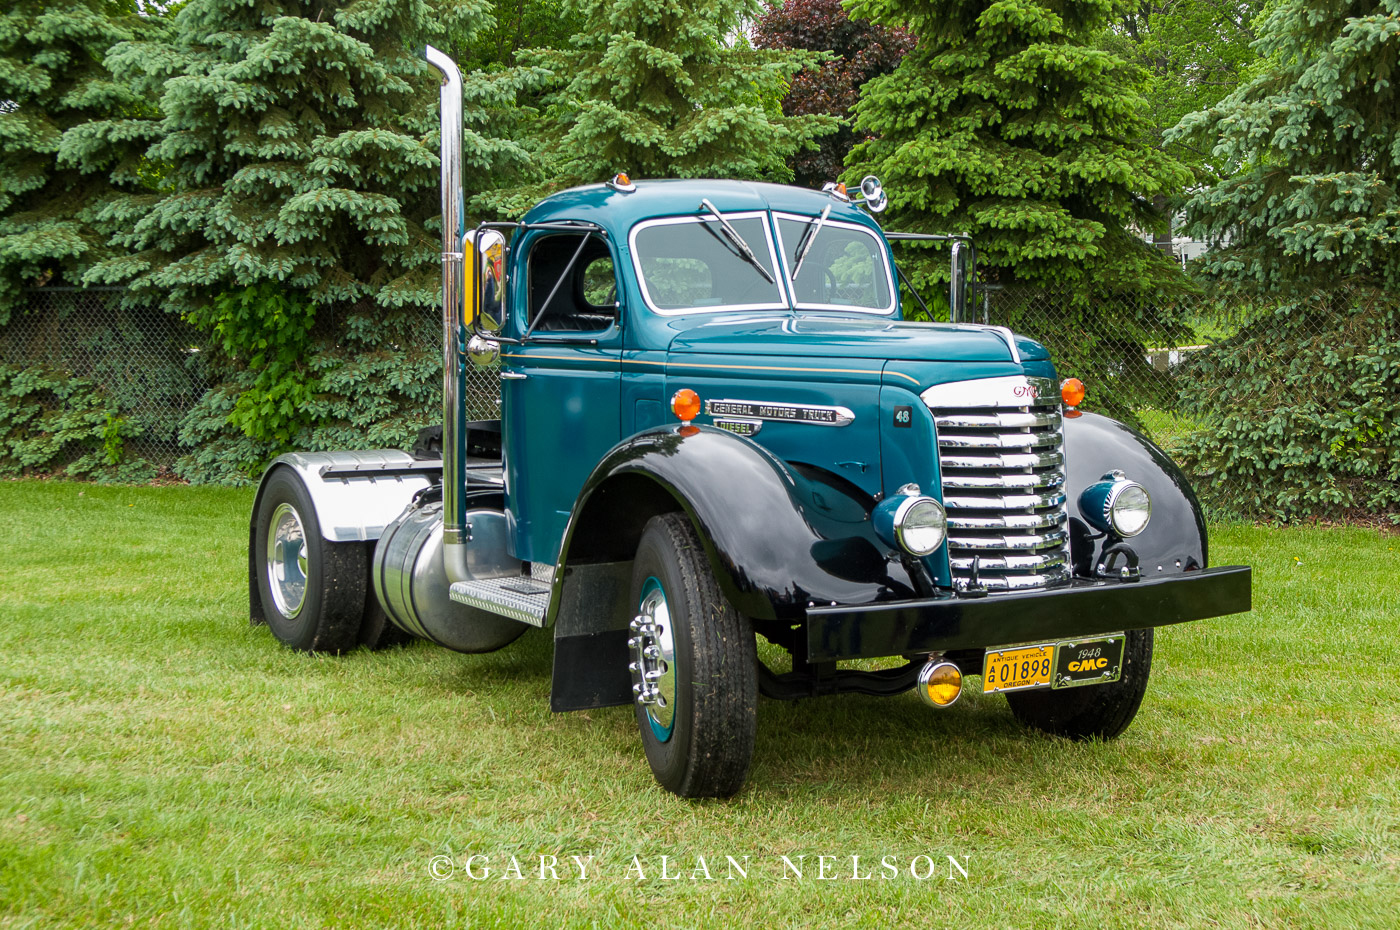 1948 GMC 752 ADCR (A=Series D=Diesel C=Conventional R=Road) Tractor